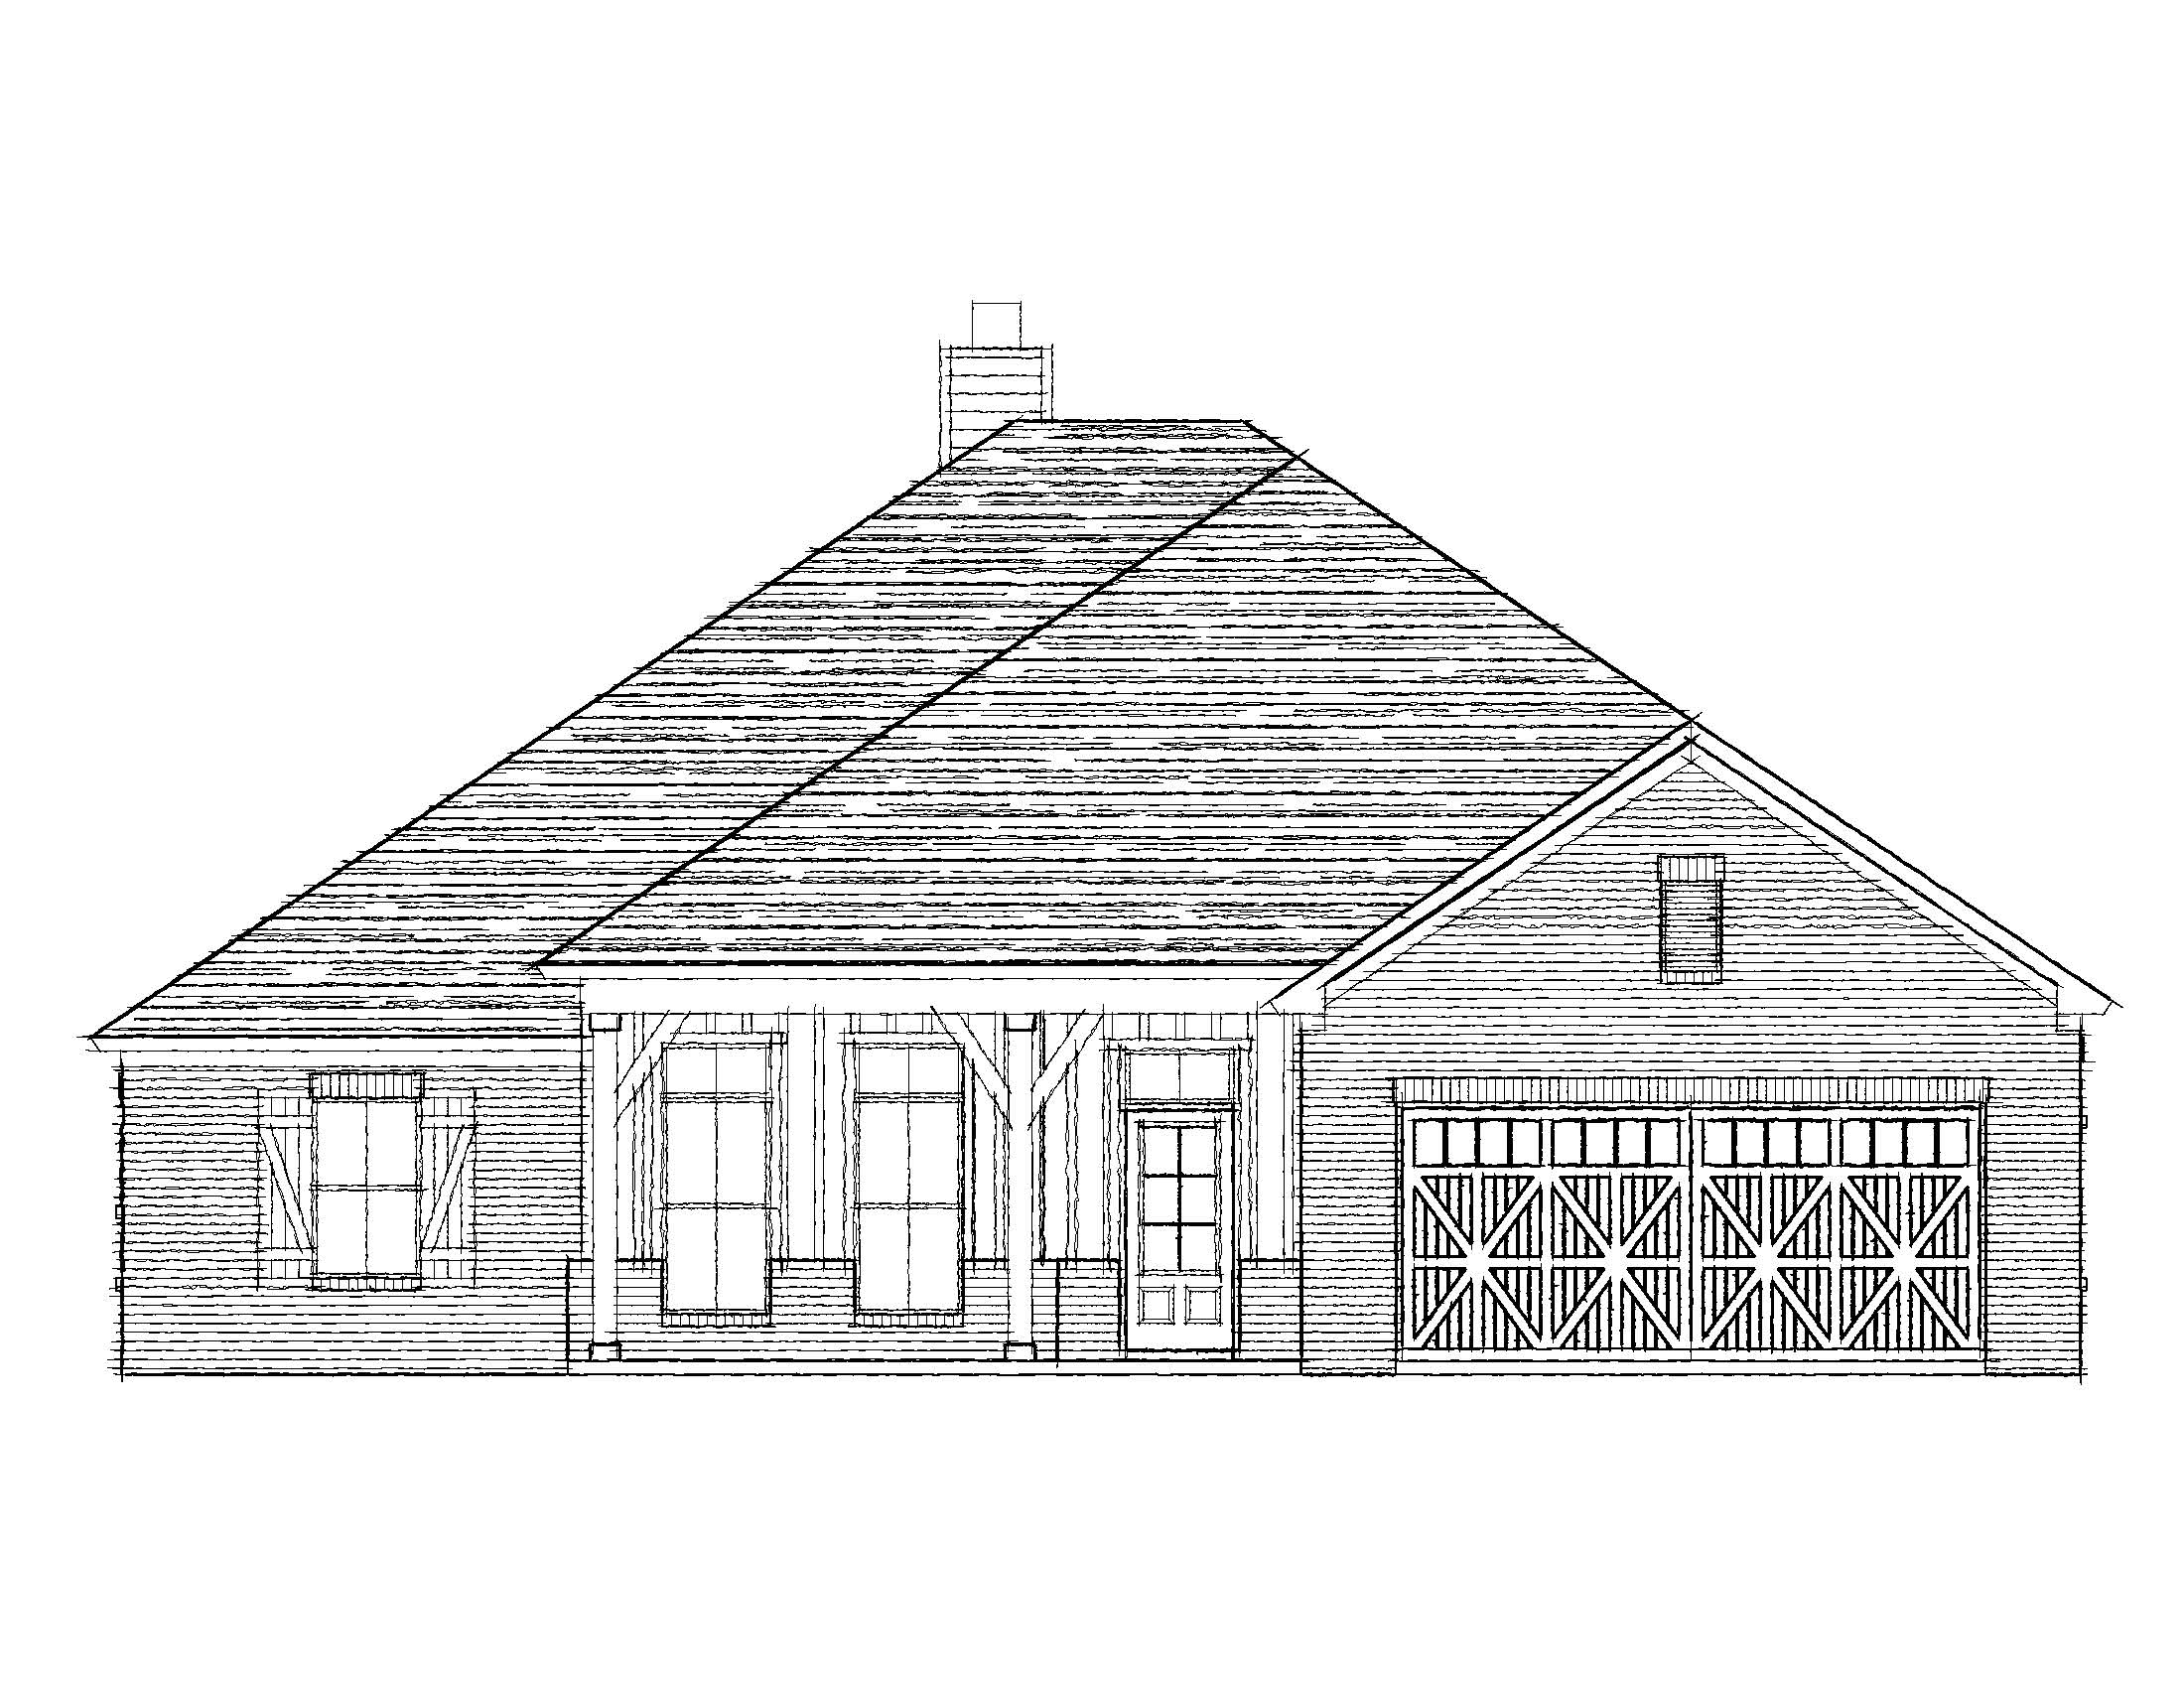 Drawing of a home